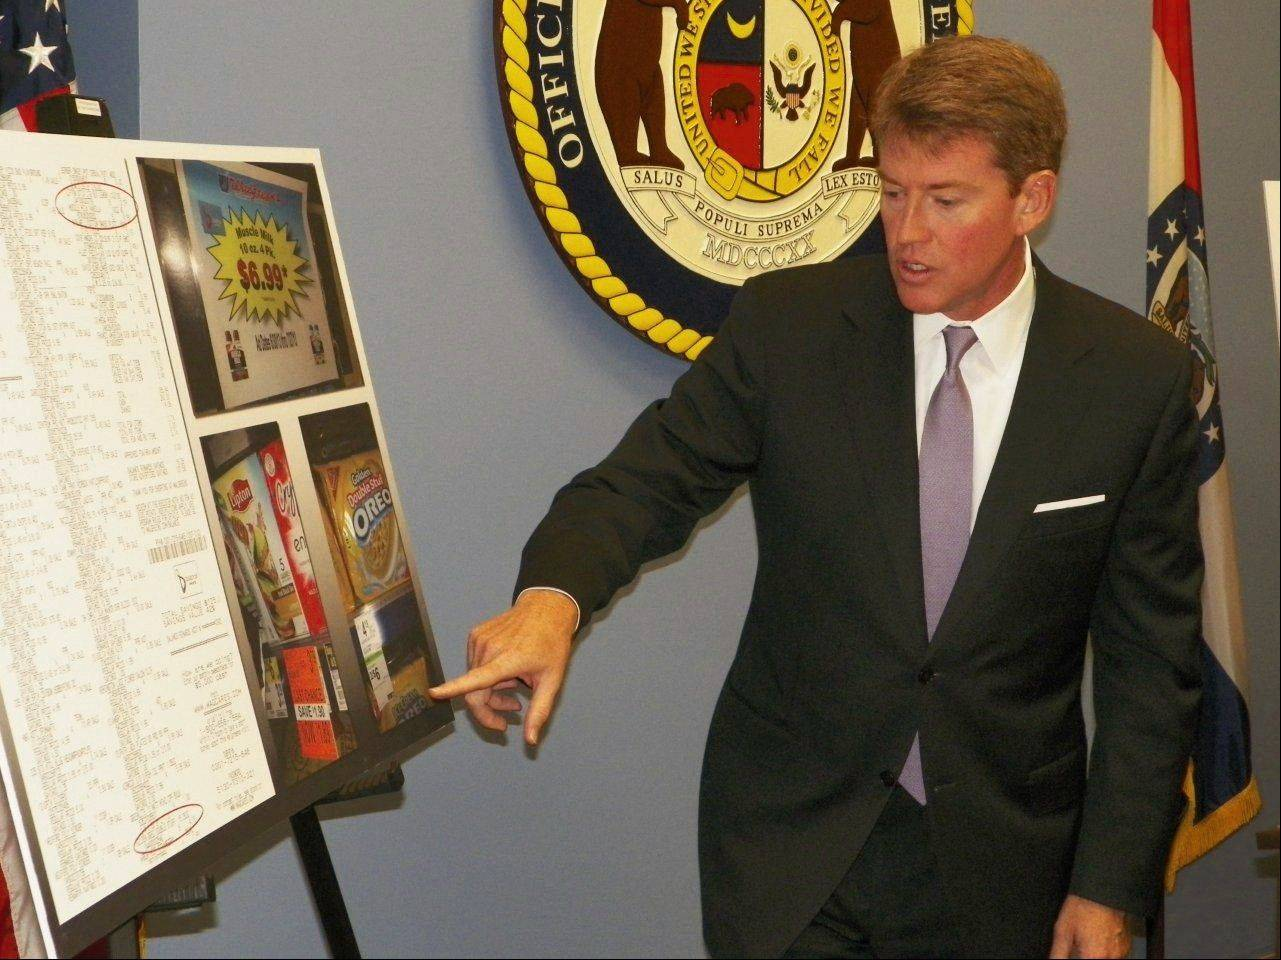 Missouri Attorney General Chris Koster details a lawsuit filed against Walgreen Co., accusing the Deerfield-based pharmacy chain of overcharging customers and using deceptive display advertising and pricing schemes.